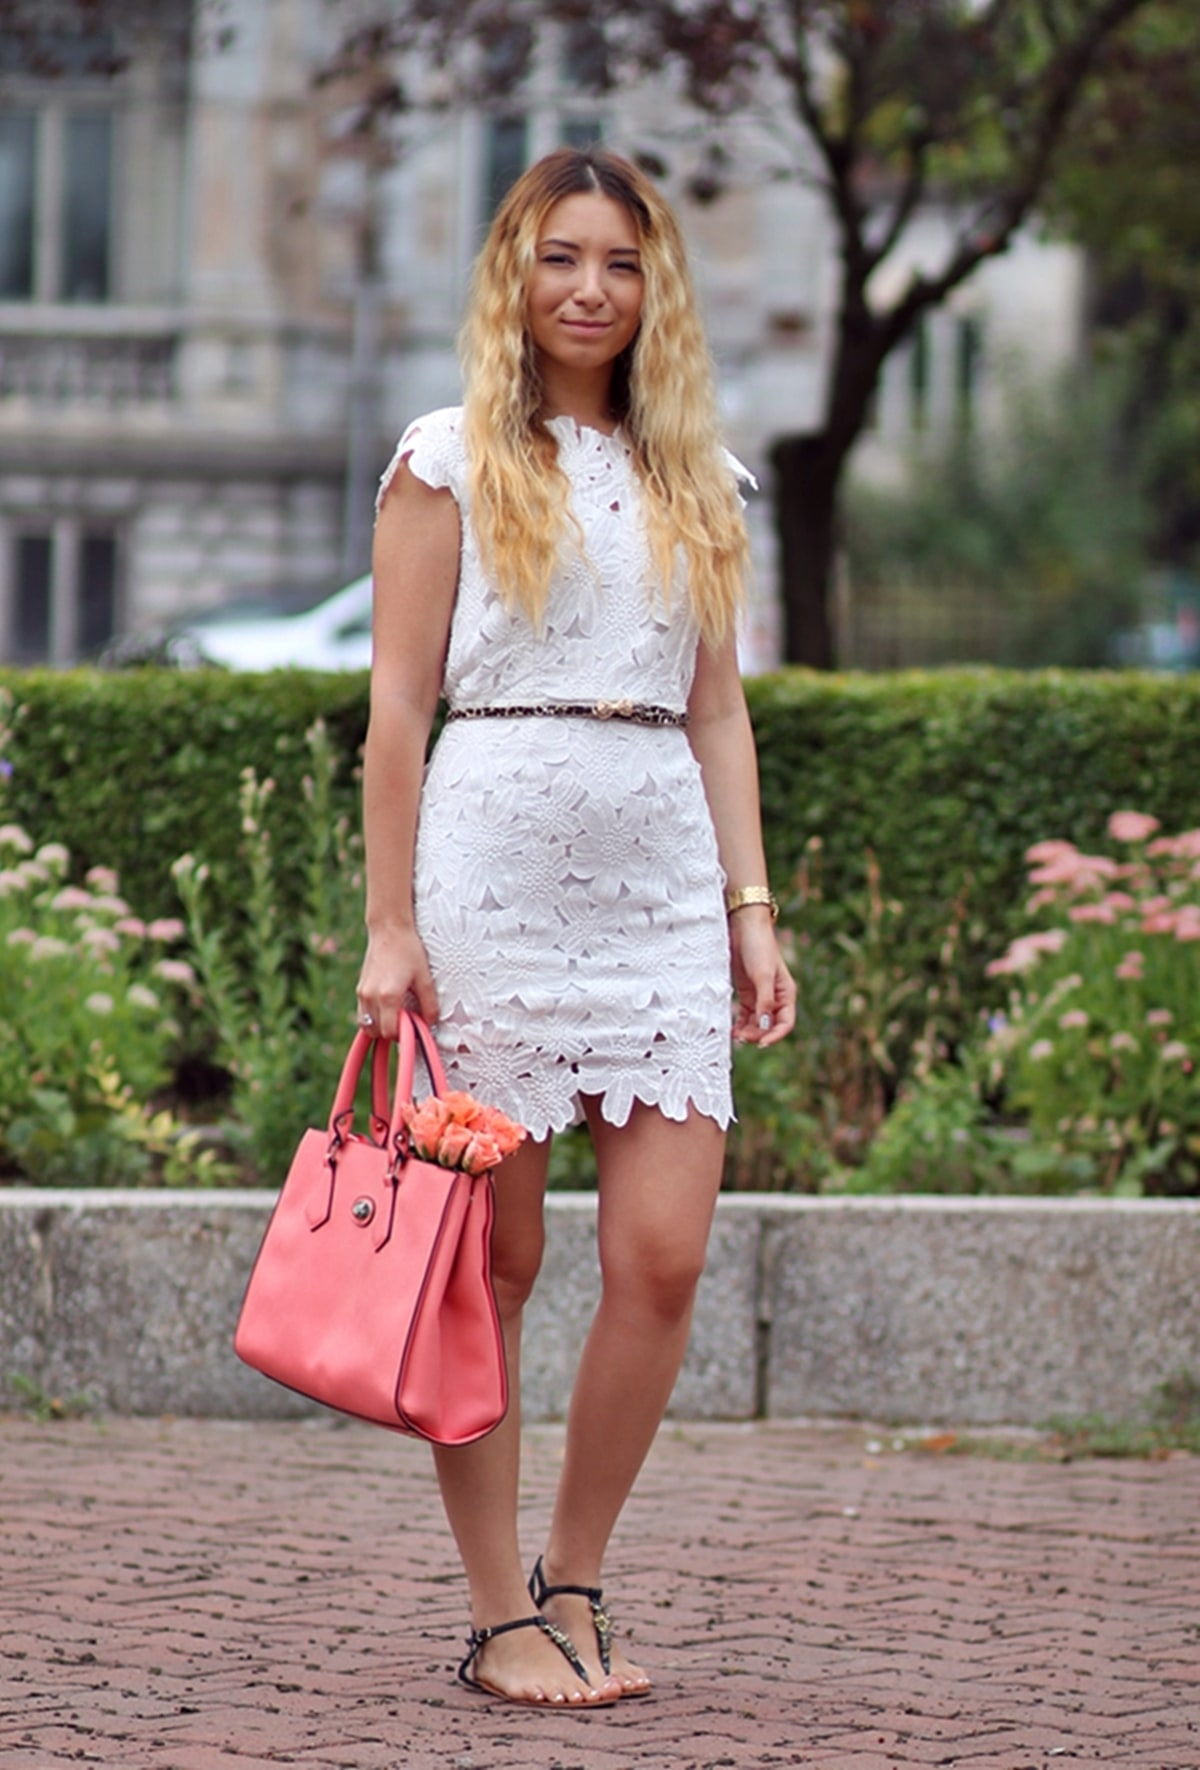 Street style: lace short white dress, coral pink bag, summer look, animal print belt, andreea ristea fashion blogger